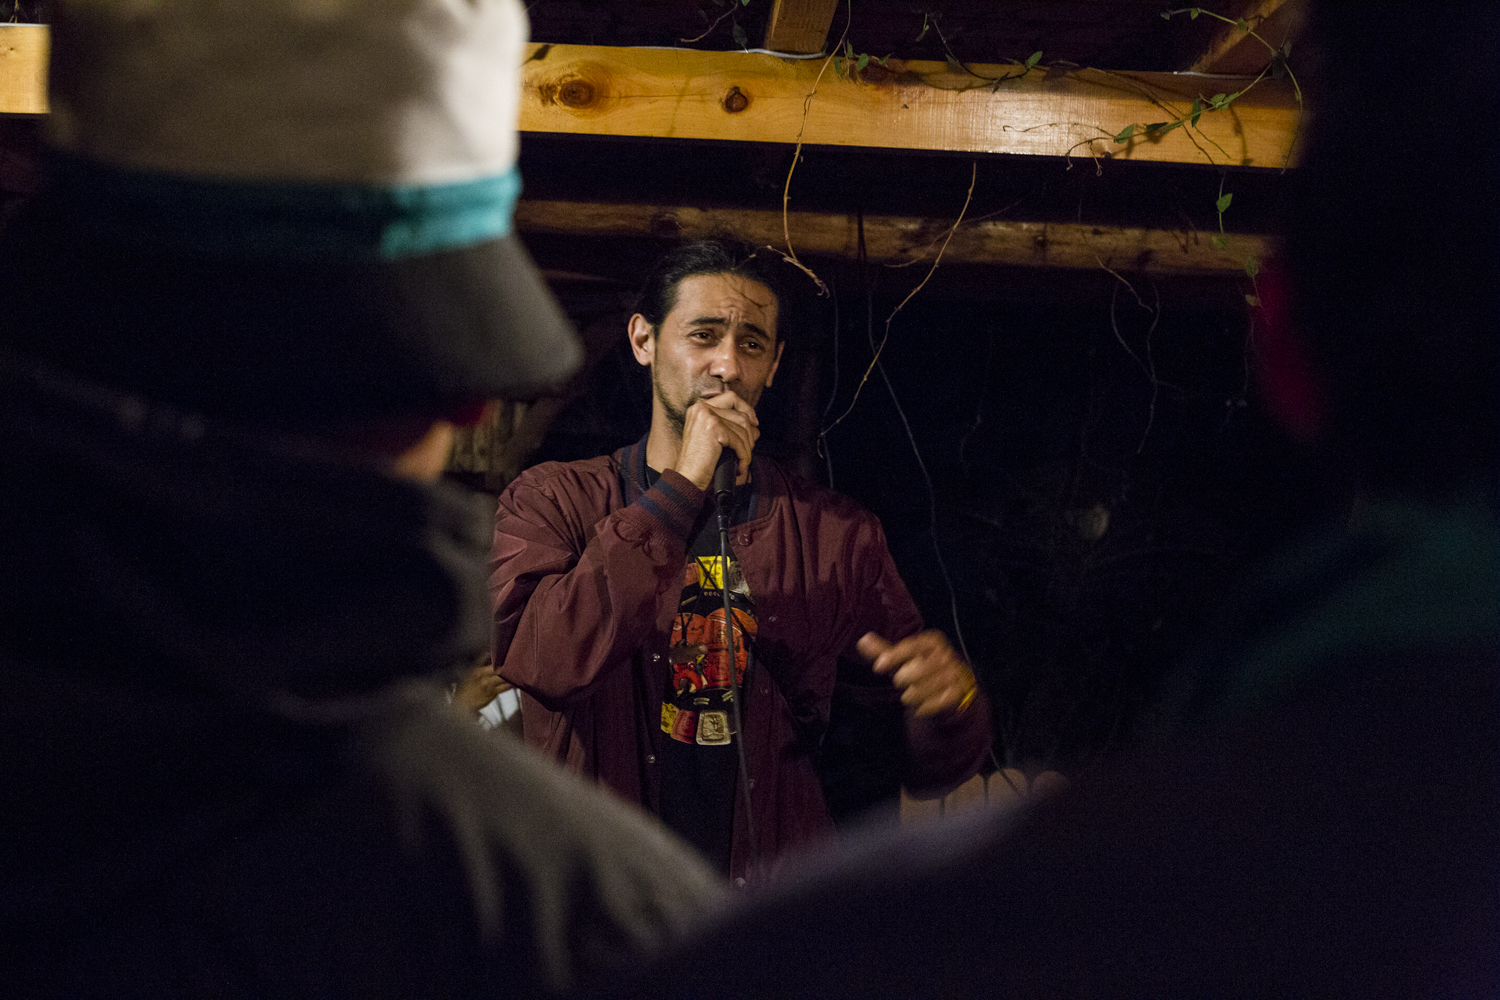 M.C.H.E. 37, raps during a freestyle seesion hosted by his group Balam Ajpu and Next Level Initiative in San Marcos La Laguna, Lake Atitlán, on November 26, 2018.